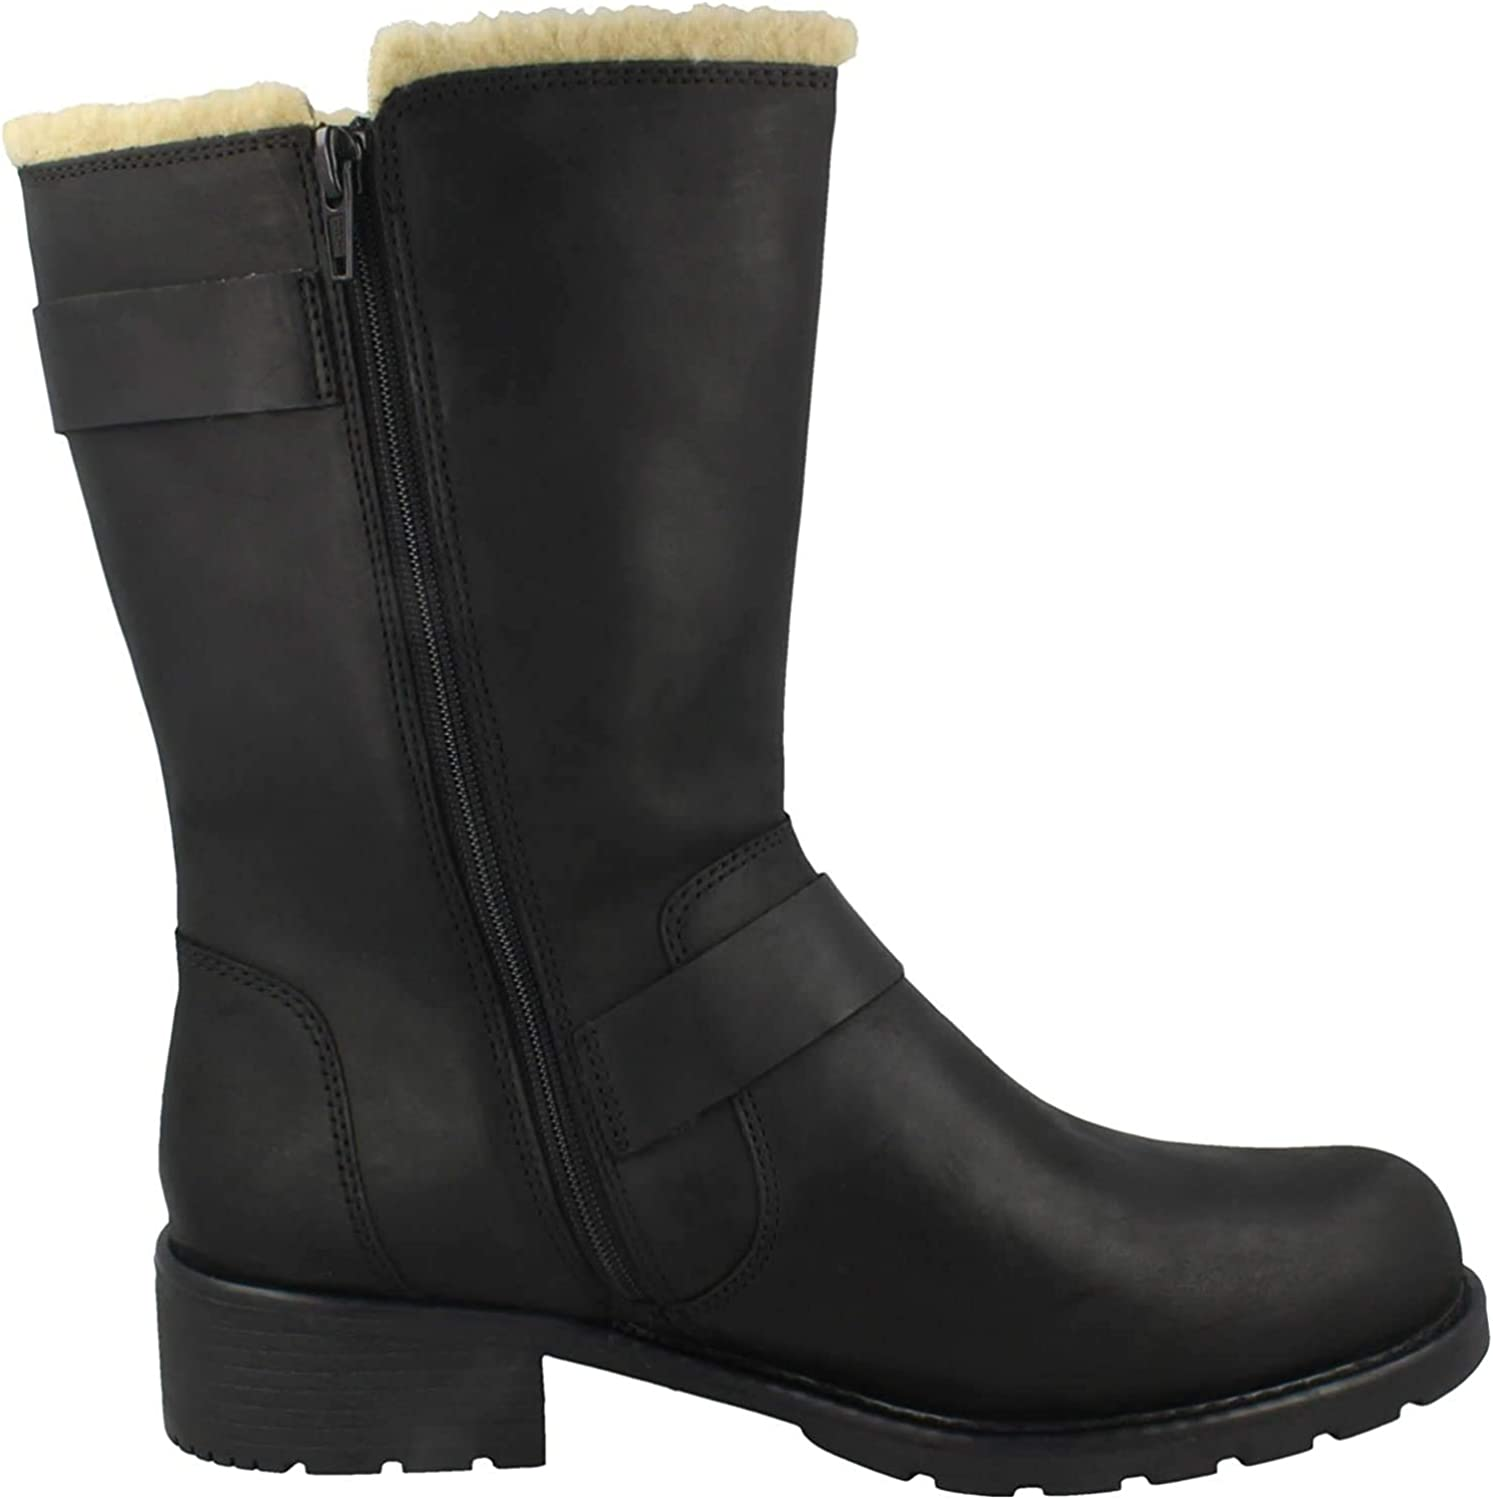 Clarks Ladies Casual Ankle Boots